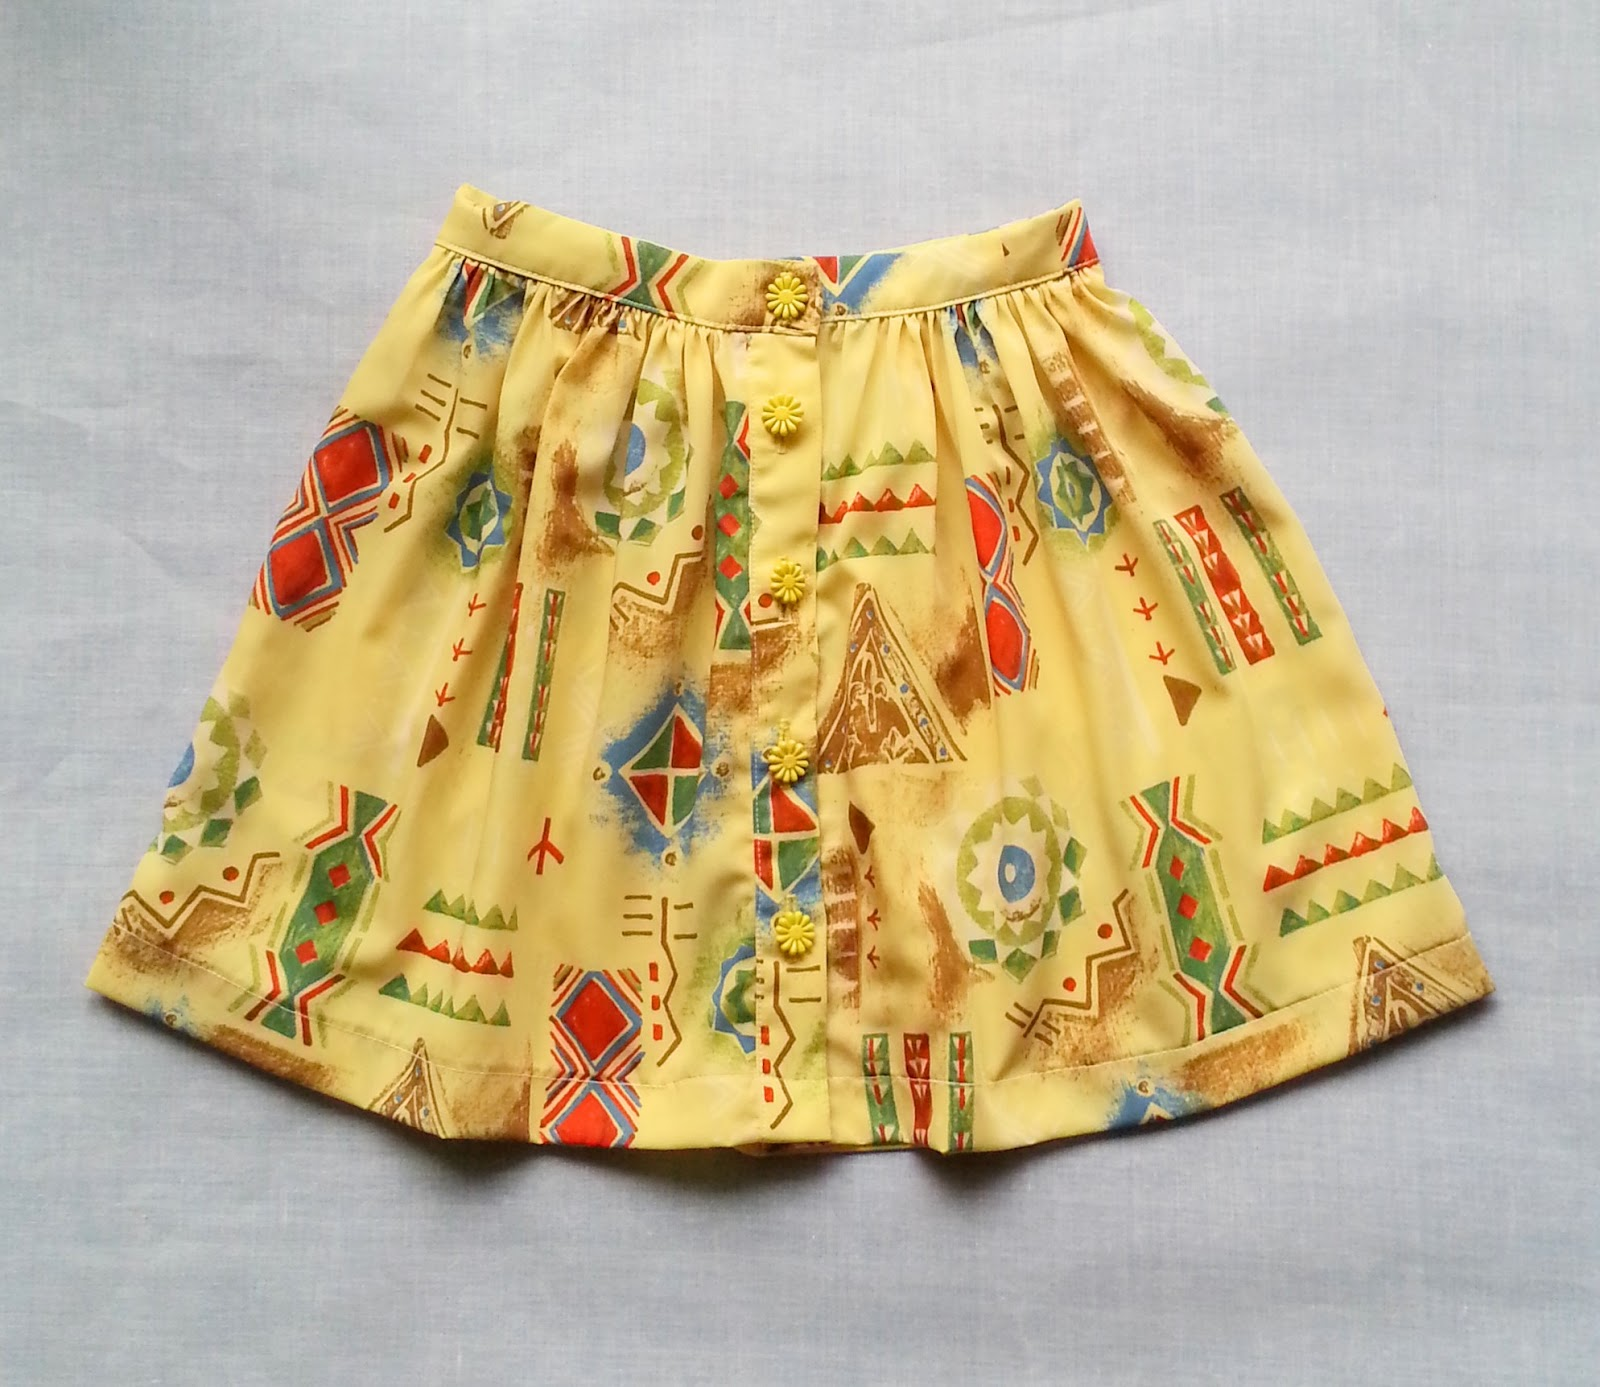 http://velvetribbonsew.blogspot.com/2013/07/little-girls-dress-and-gathered-skirt.html